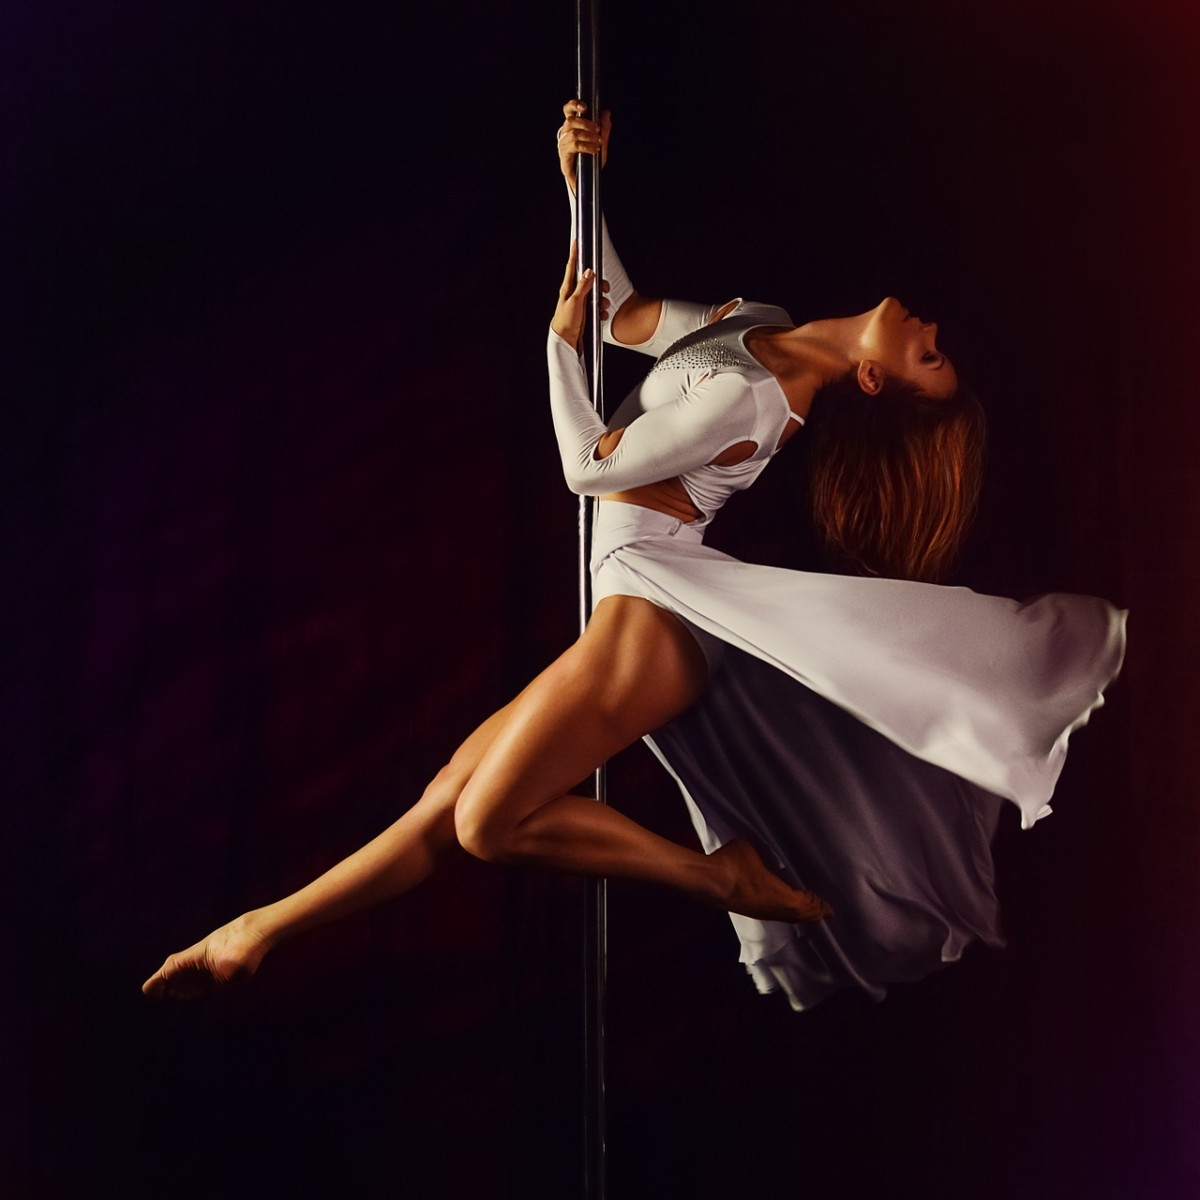 Pole Dancing at Emerald City Trapeze Arts